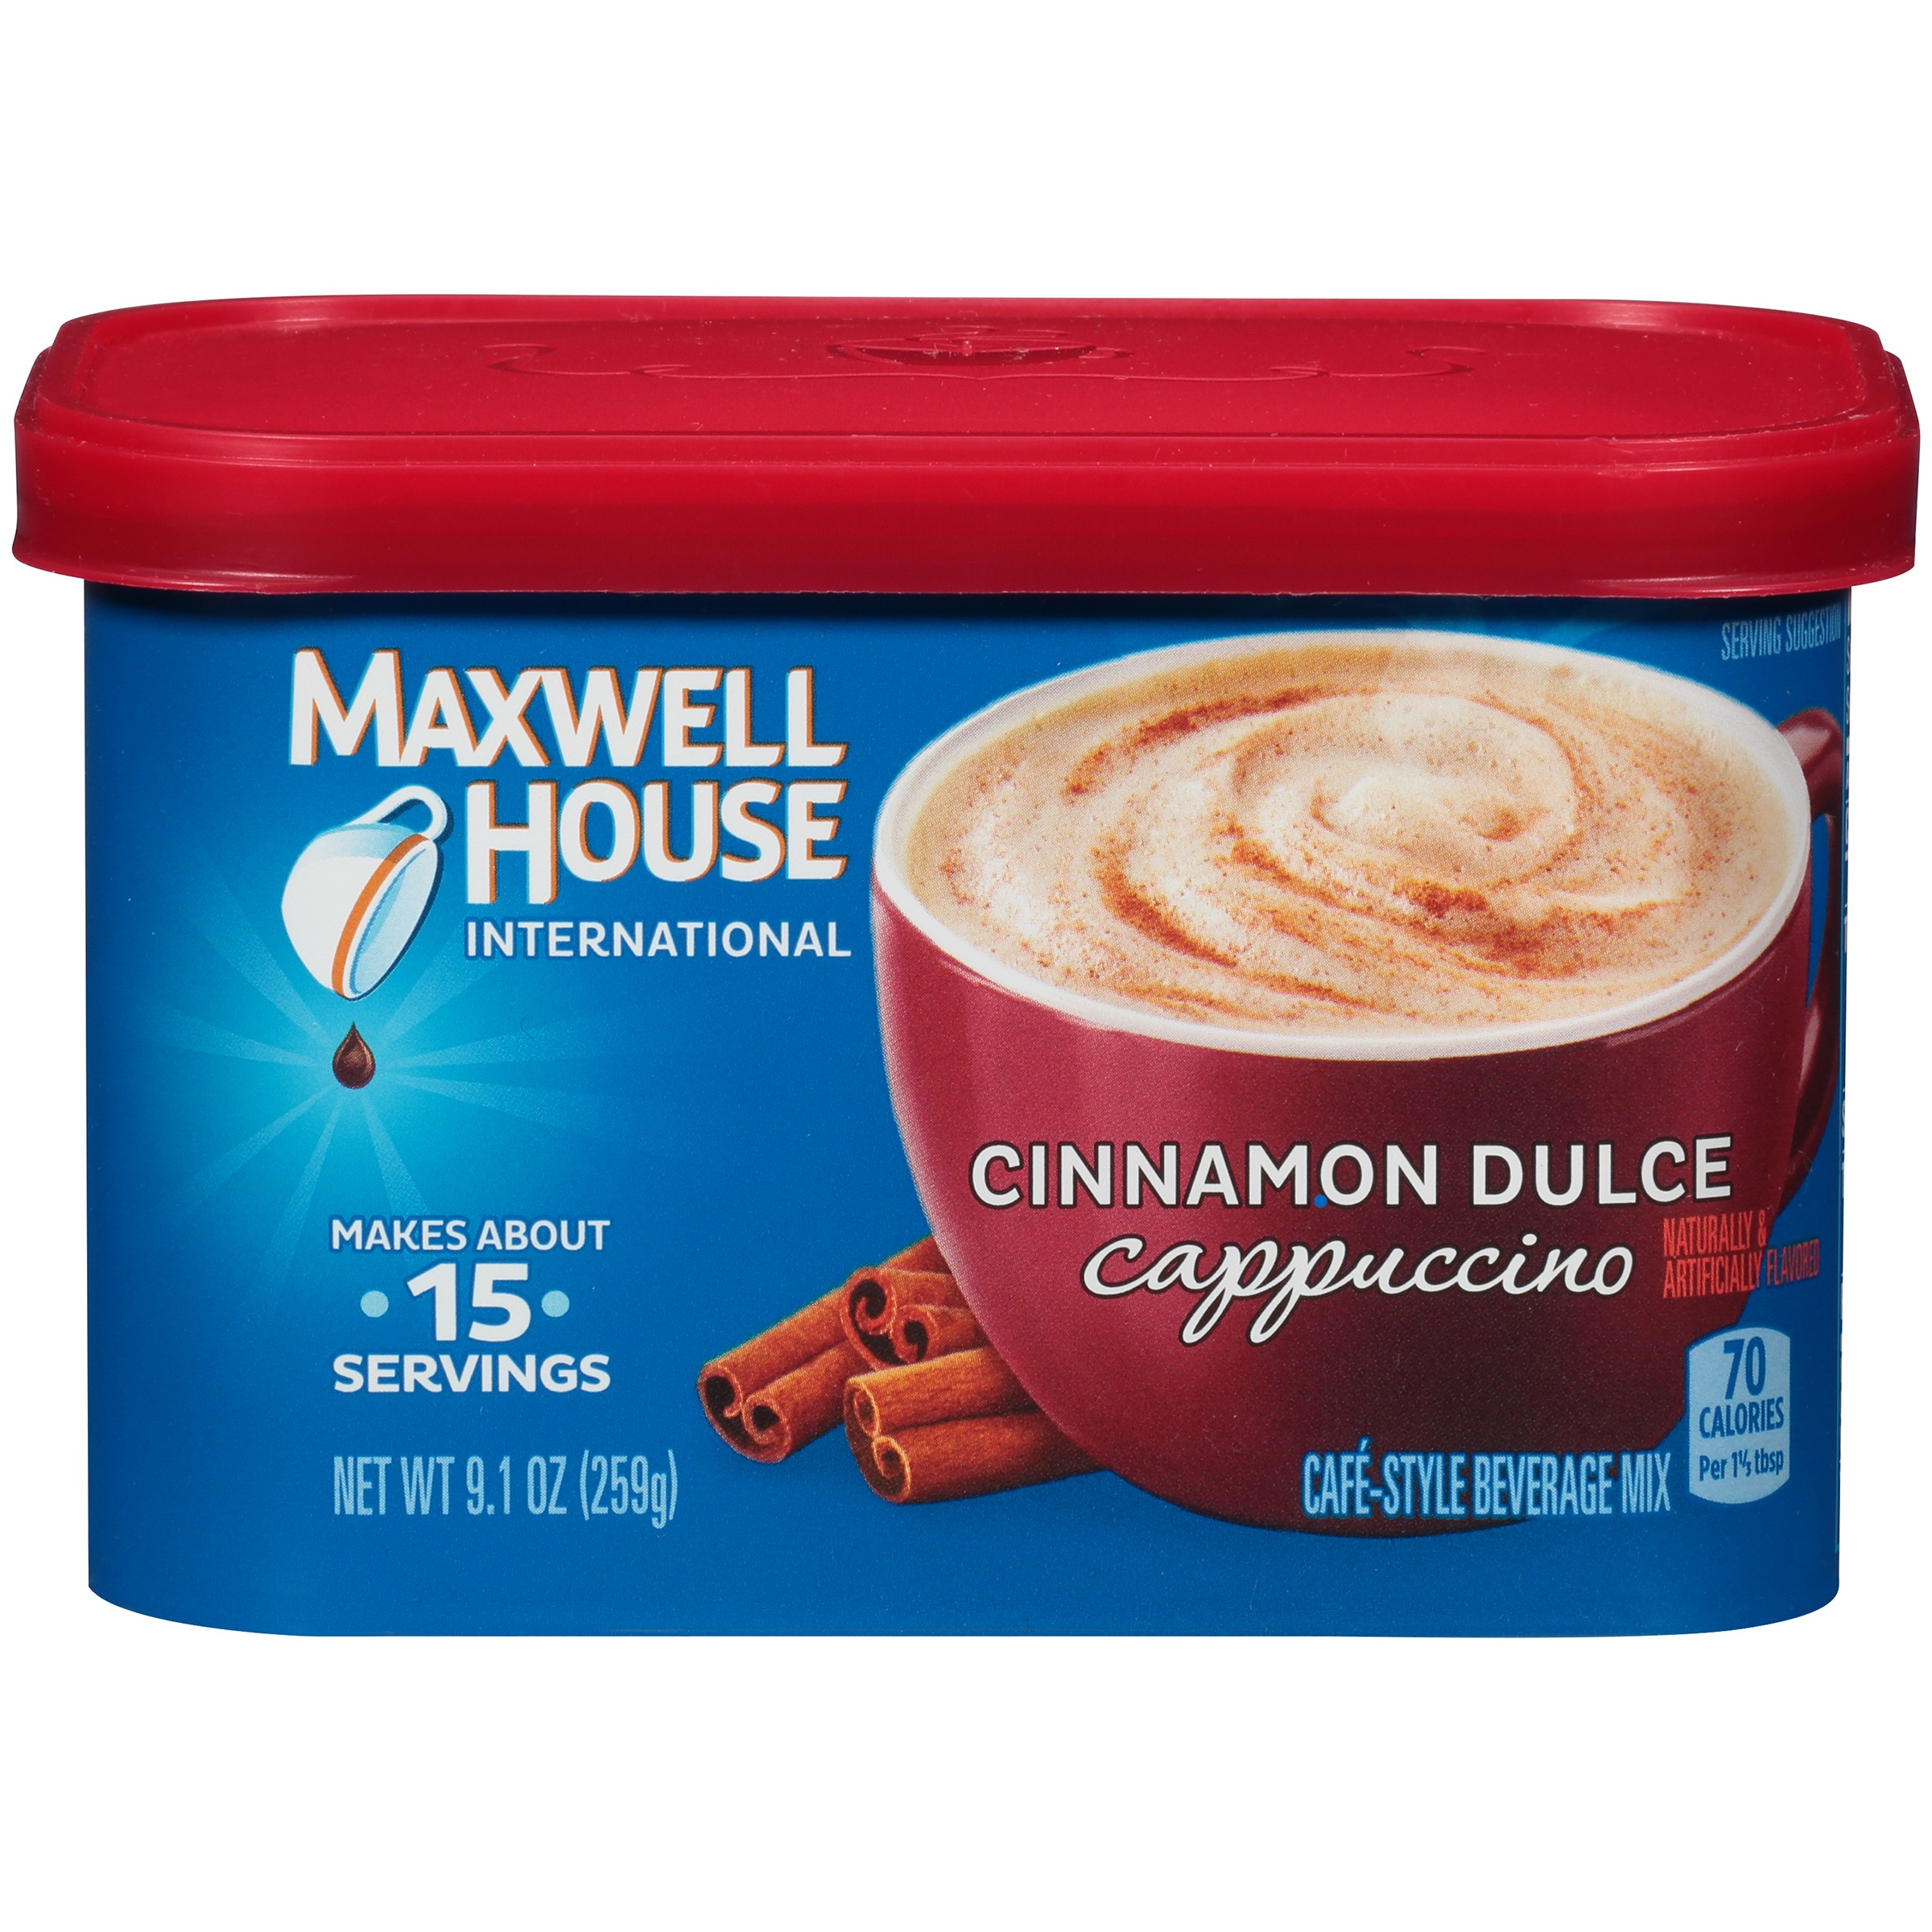 (4 Pack) Maxwell House International Cinnamon Dulce Cappuccino, 9.1 oz Canister